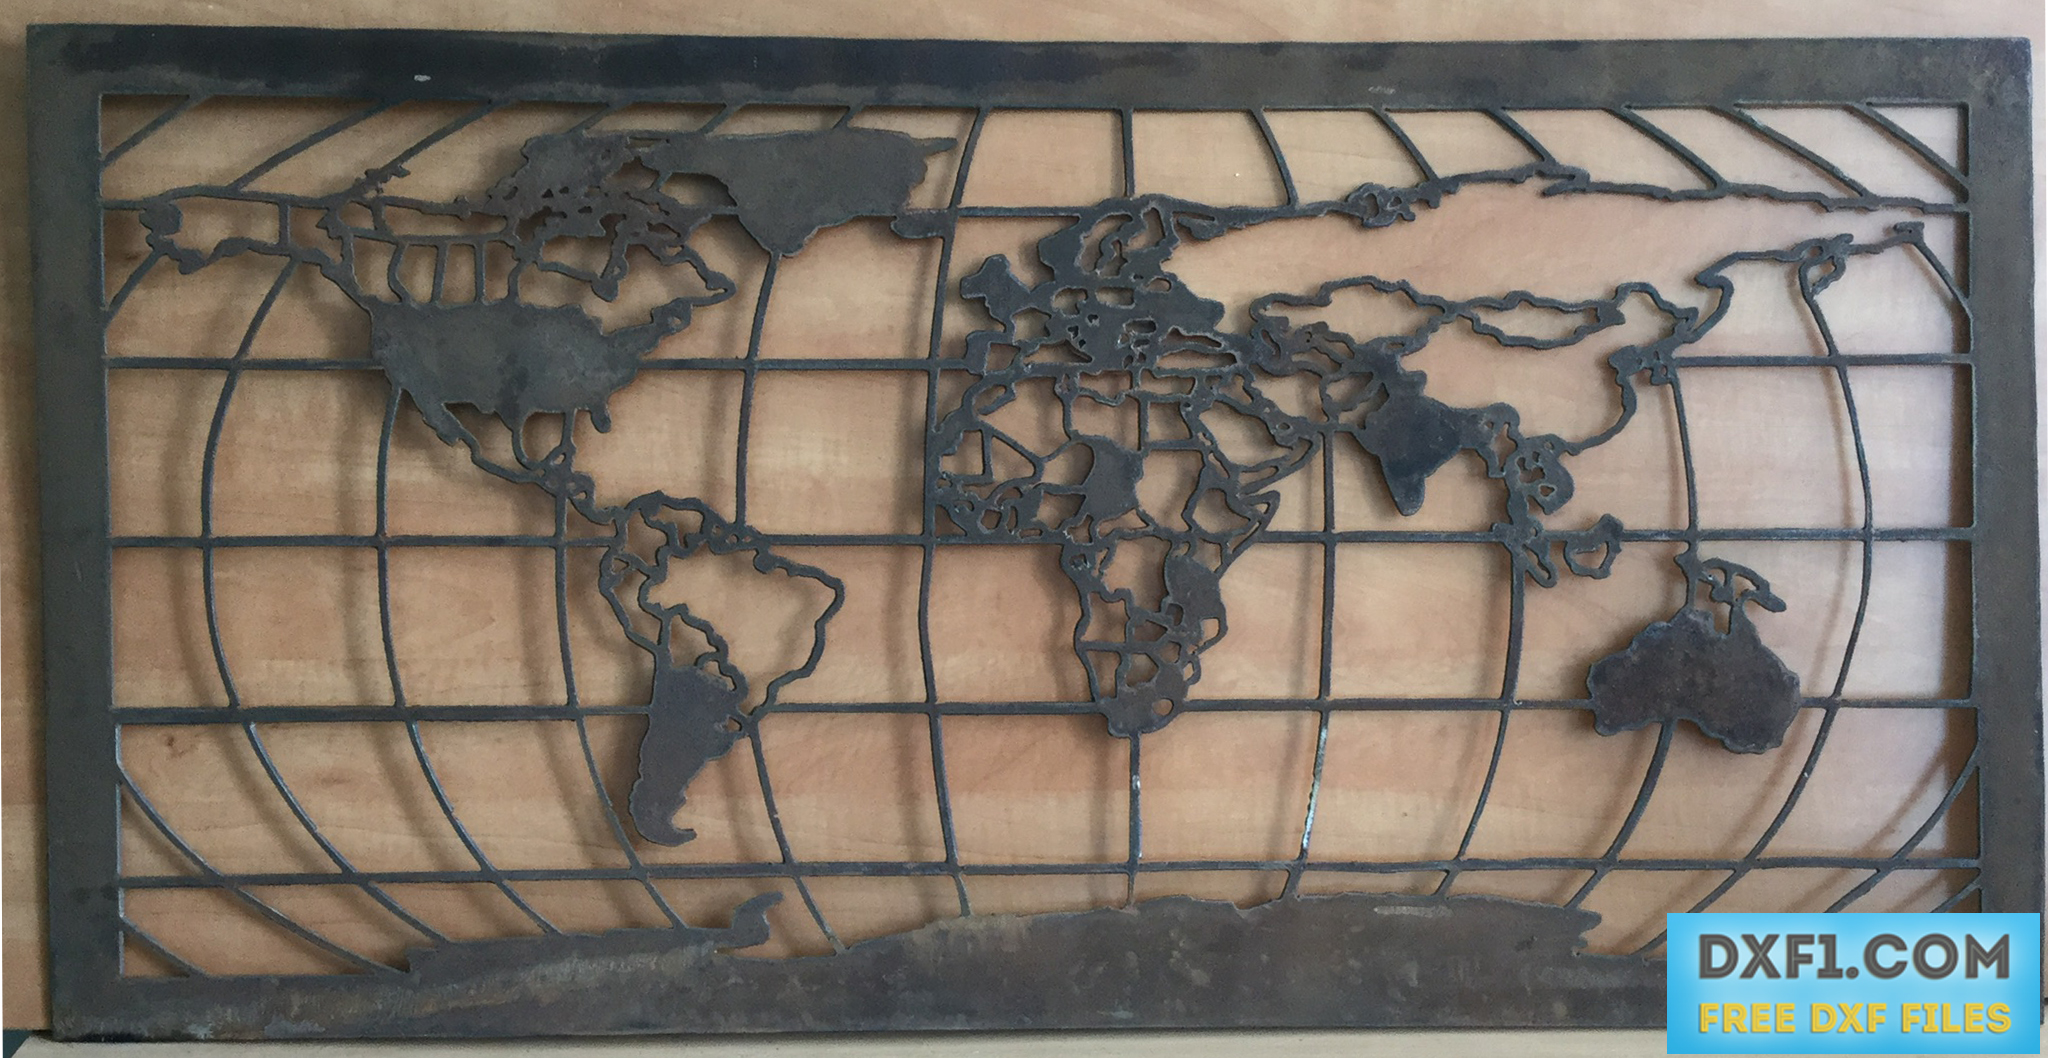 World map dxf plasma cut file free dxf files free cad software for air plasma cutting i recommend using a sheet of at least 1000x500mm 4020 the download contains dxf eps and png files gumiabroncs Choice Image